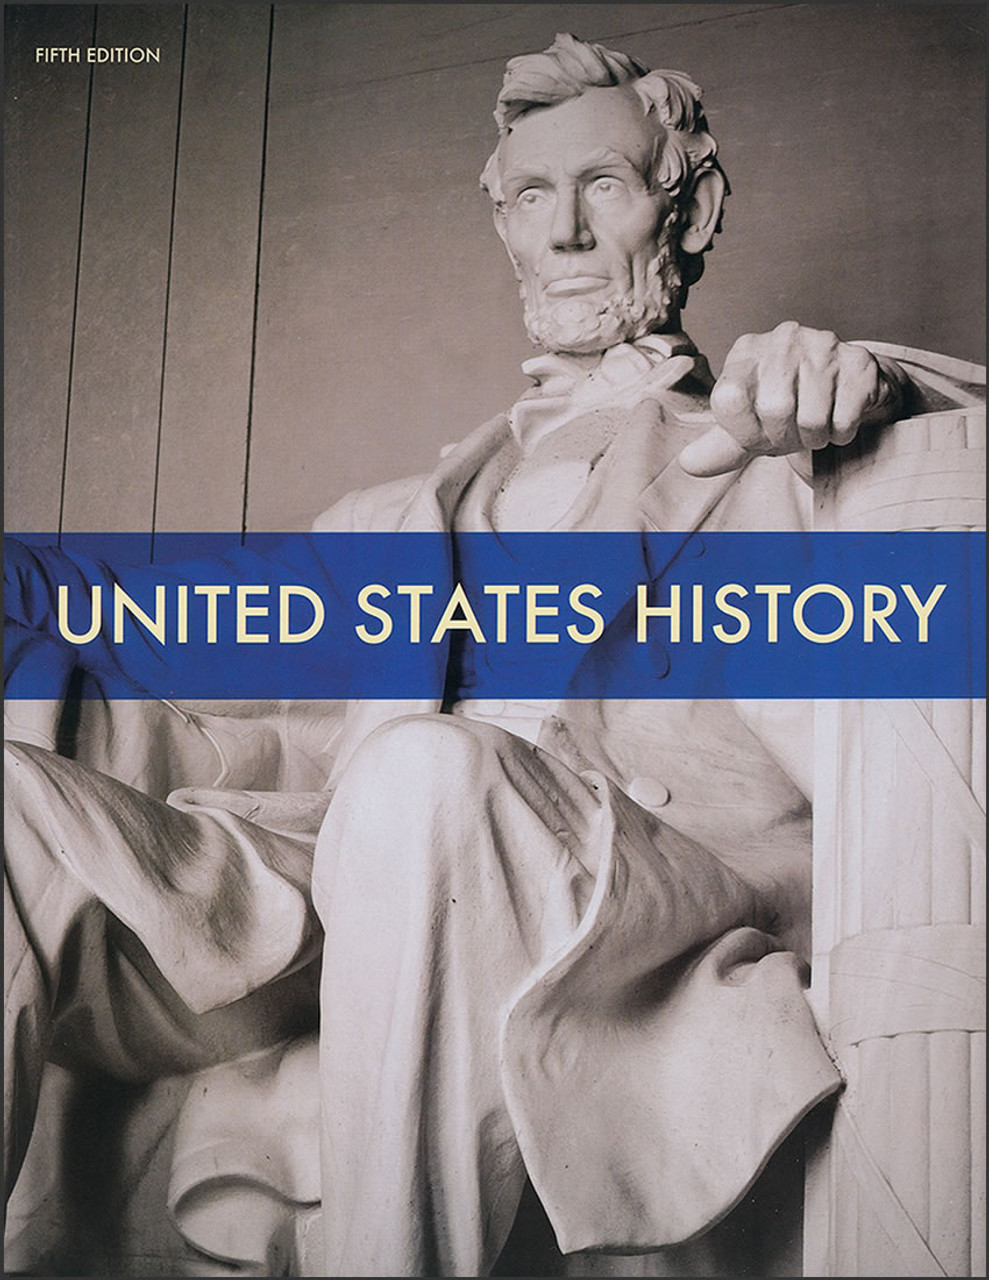 United States History, 5th edition (first half)